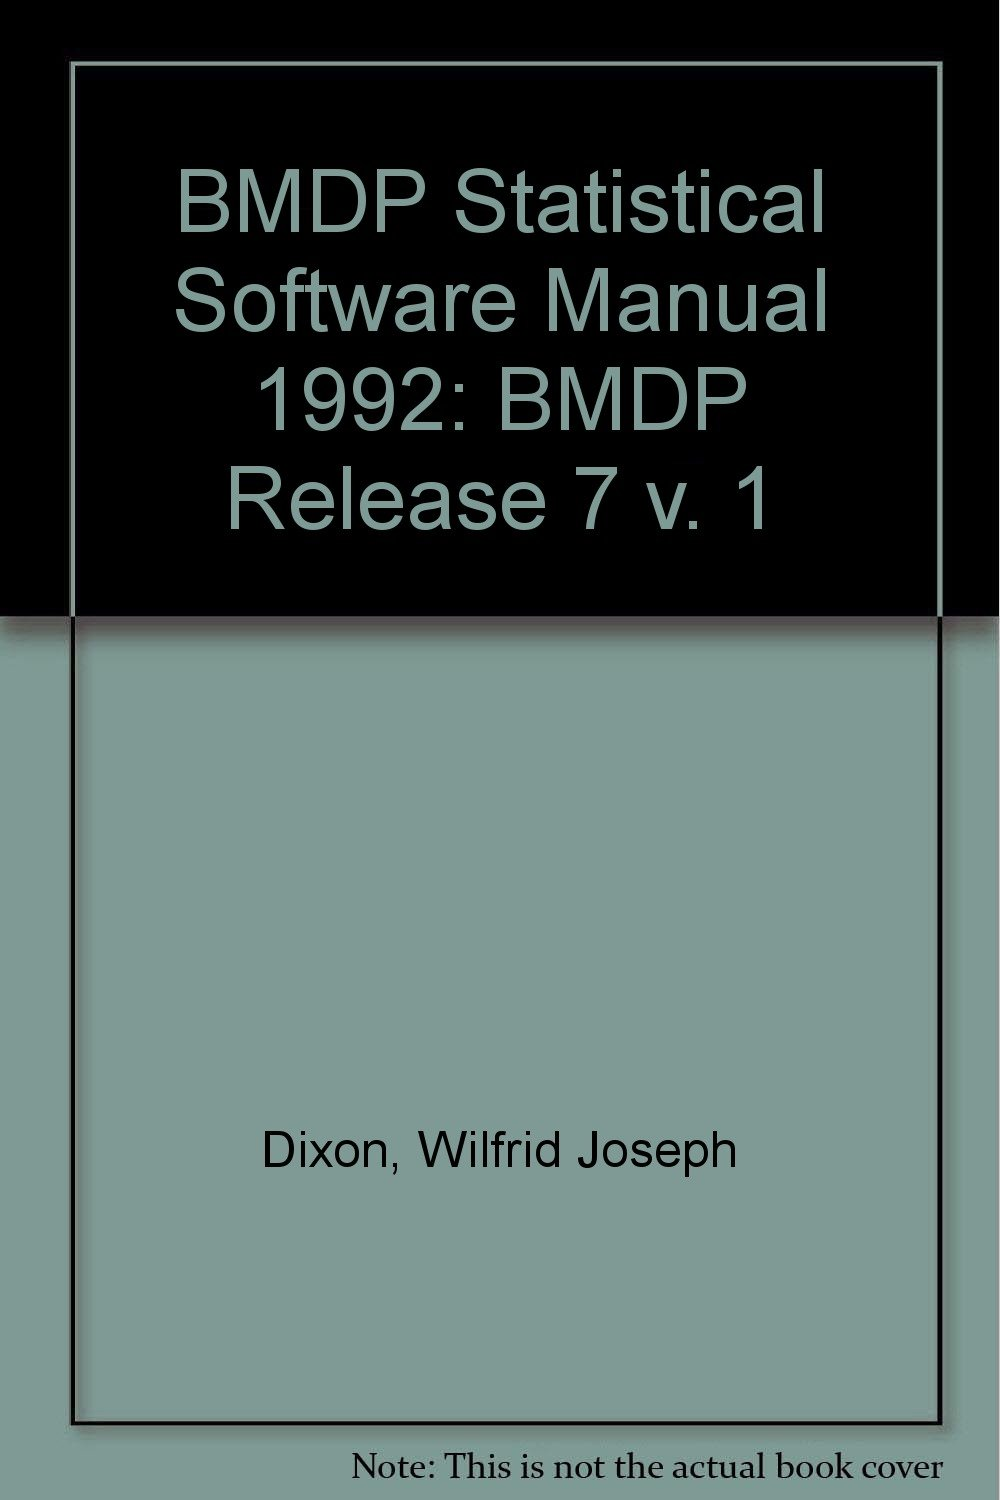 Bmdp Statistical Software Manual/to Accompany Bmdp Release 7/Version 7.0:  001: W. J. Dixon: Amazon.com.mx: Libros